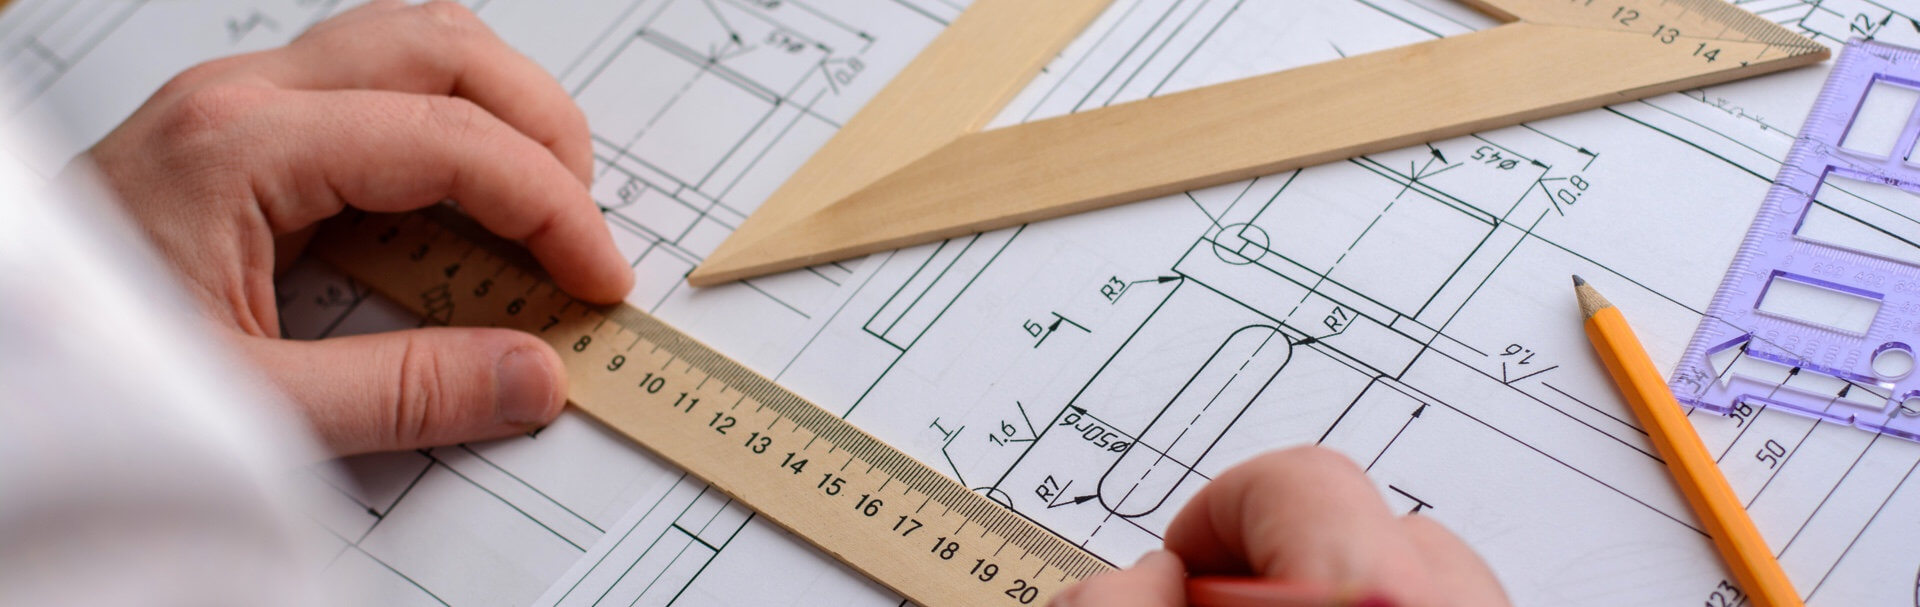 Engineer looking at product blueprints with rulers on top